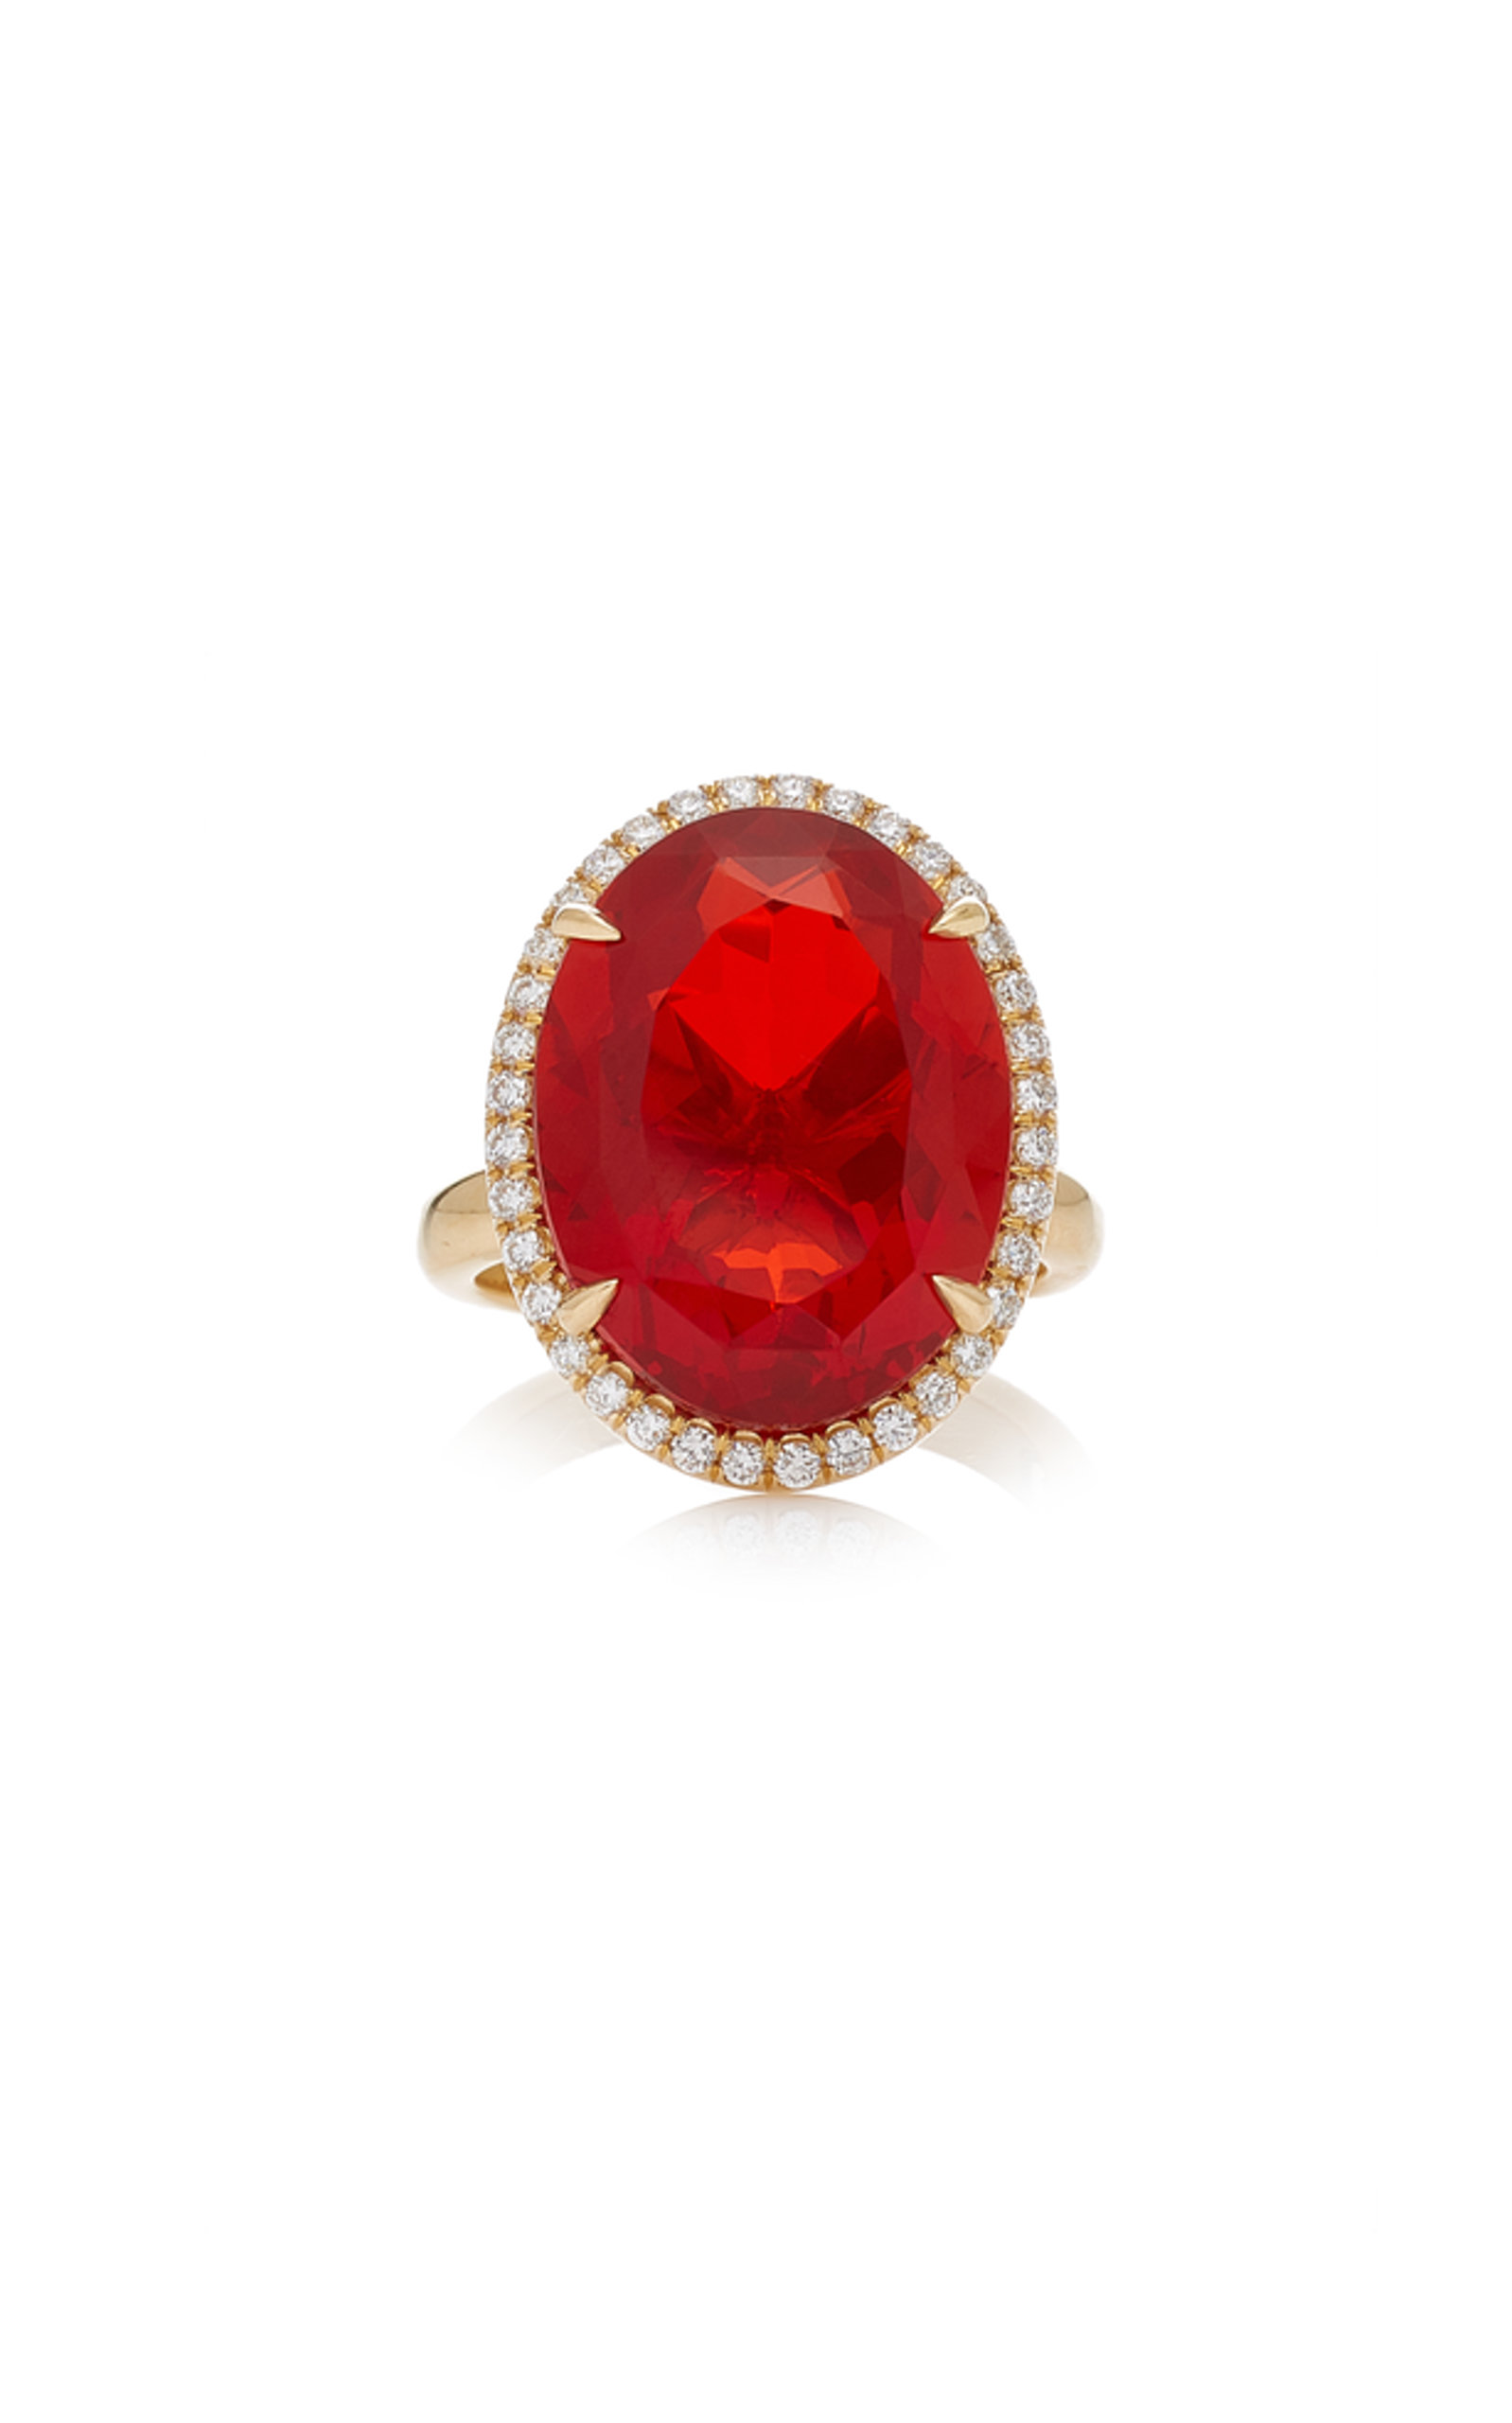 KATHERINE JETTER ONE-OF-A-KIND FIRE OPAL RING